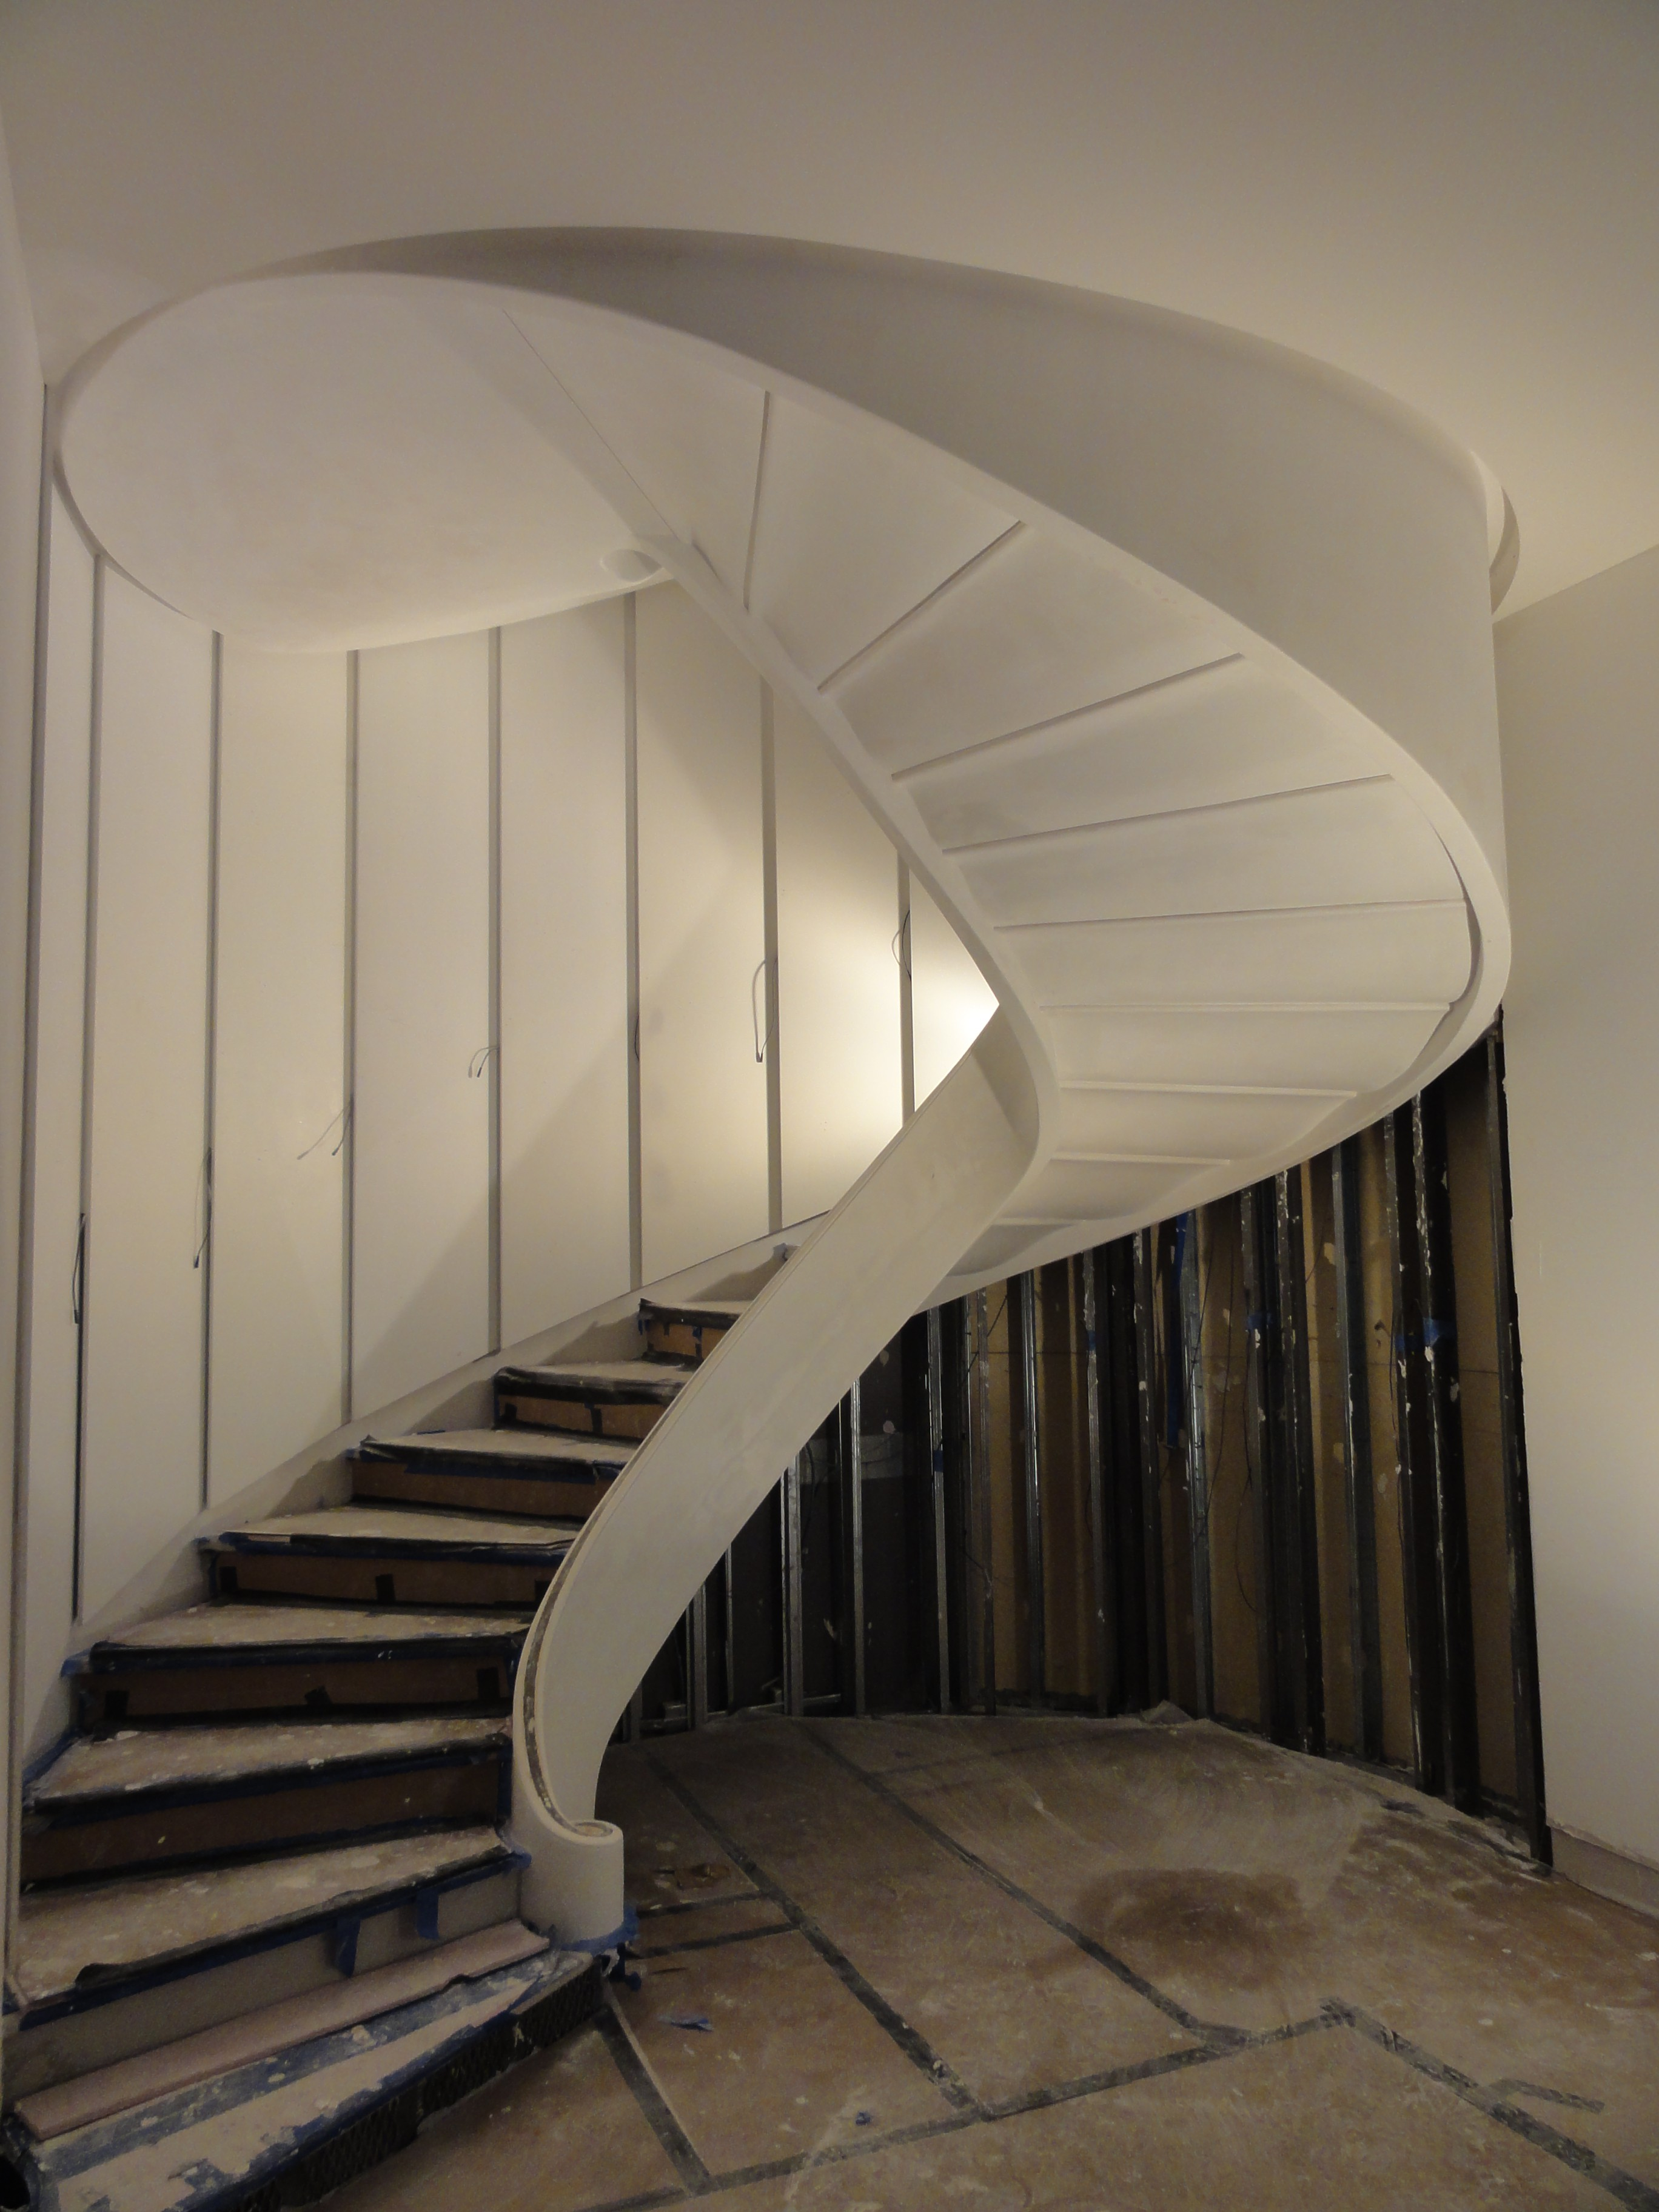 Staircases Encapsulated In Plaster